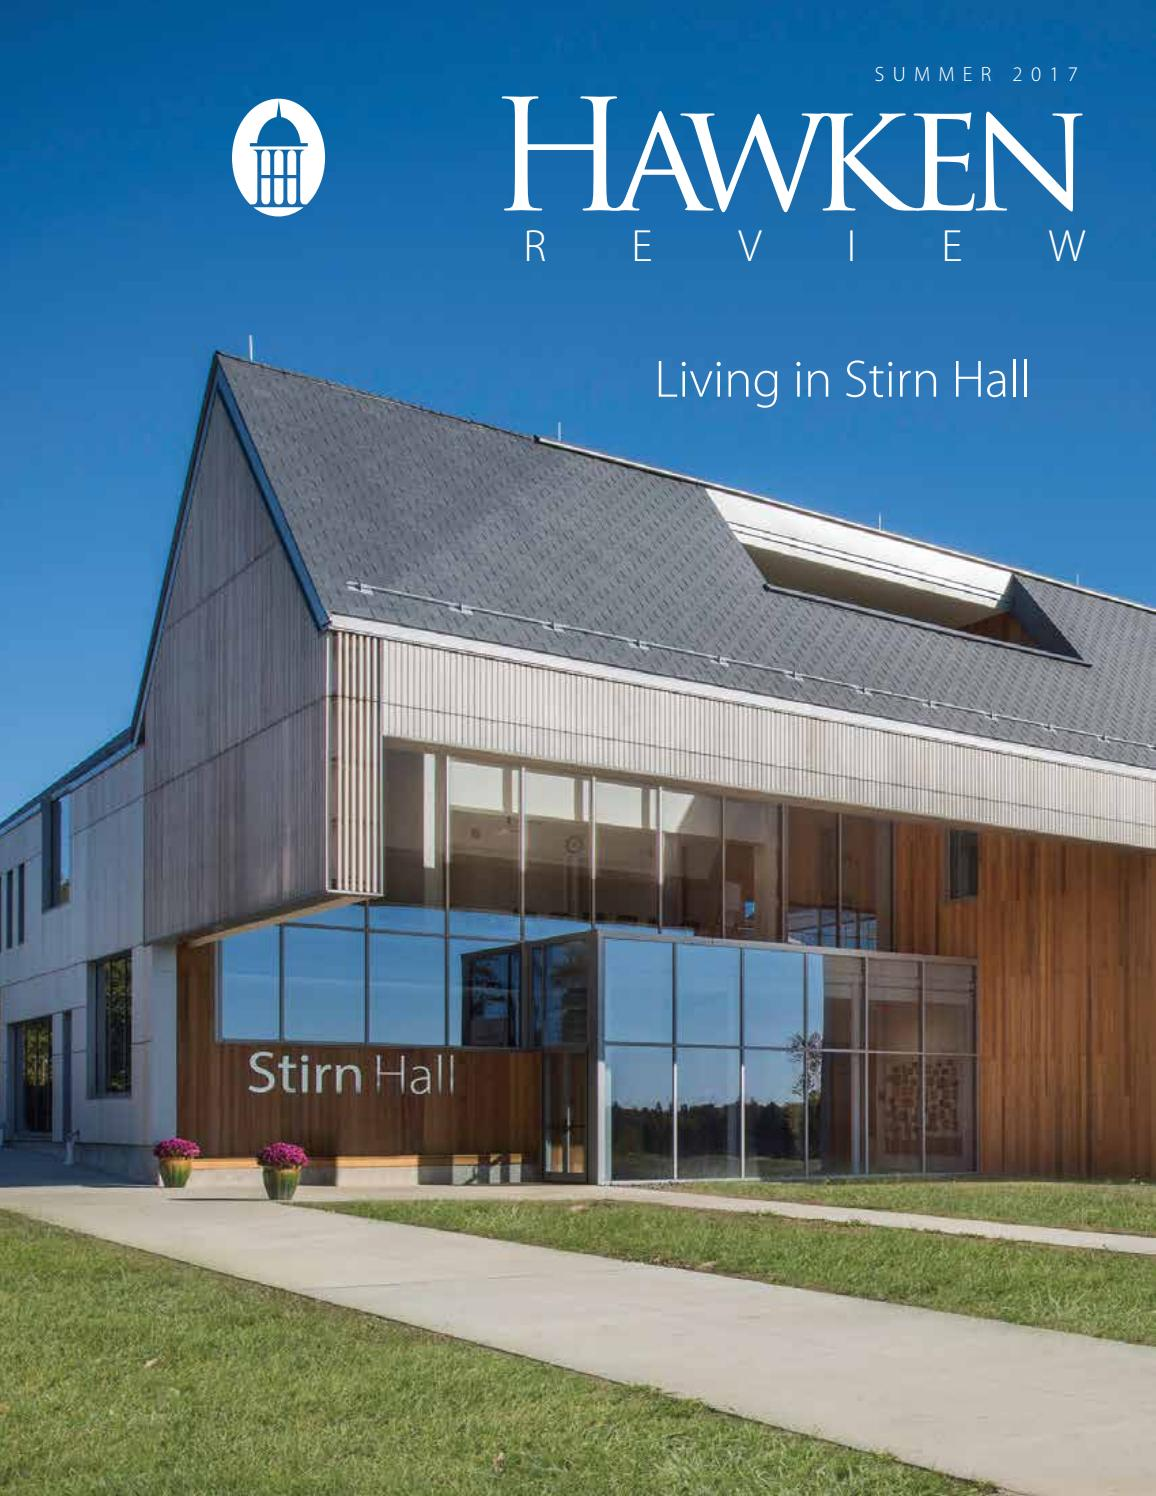 The Hawken Review, Summer 2017 by Hawken School - issuu